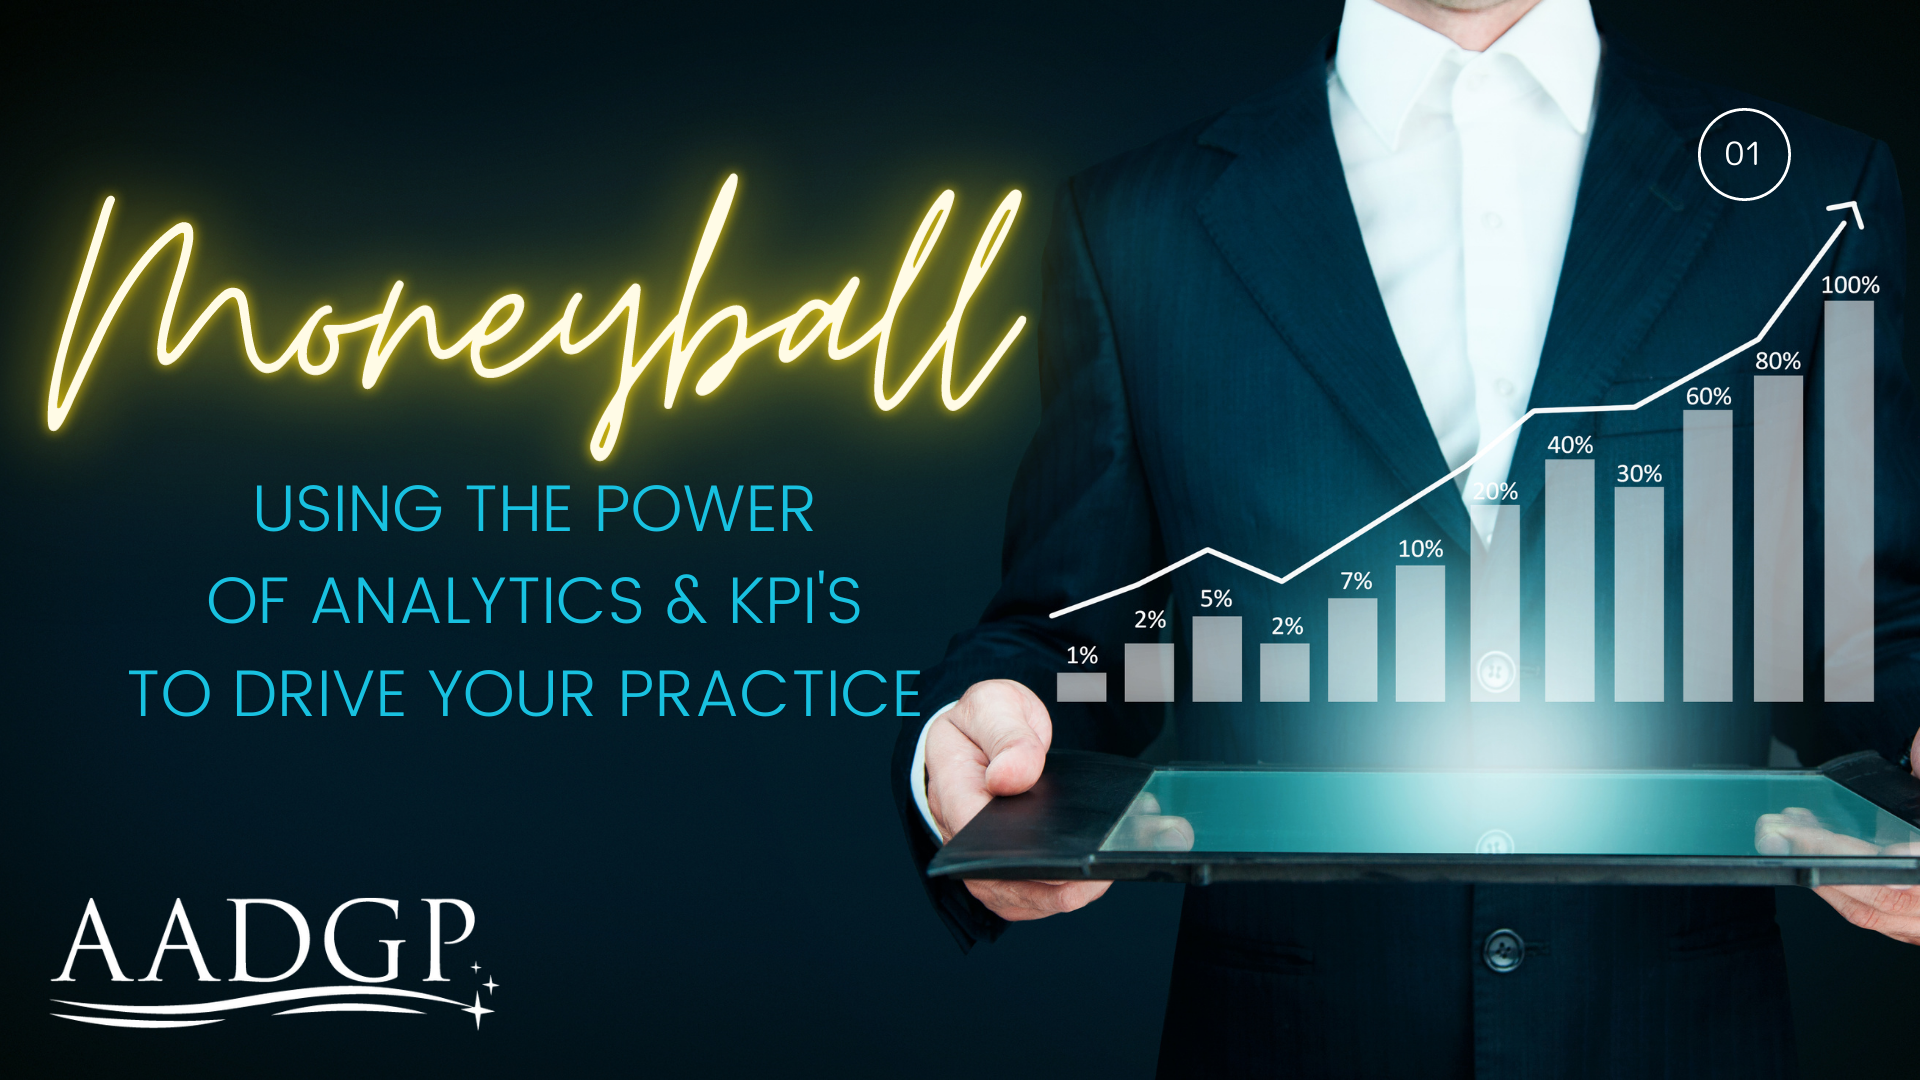 Moneyball: Using the Power of Analytics and KPIs to Drive Your Practice